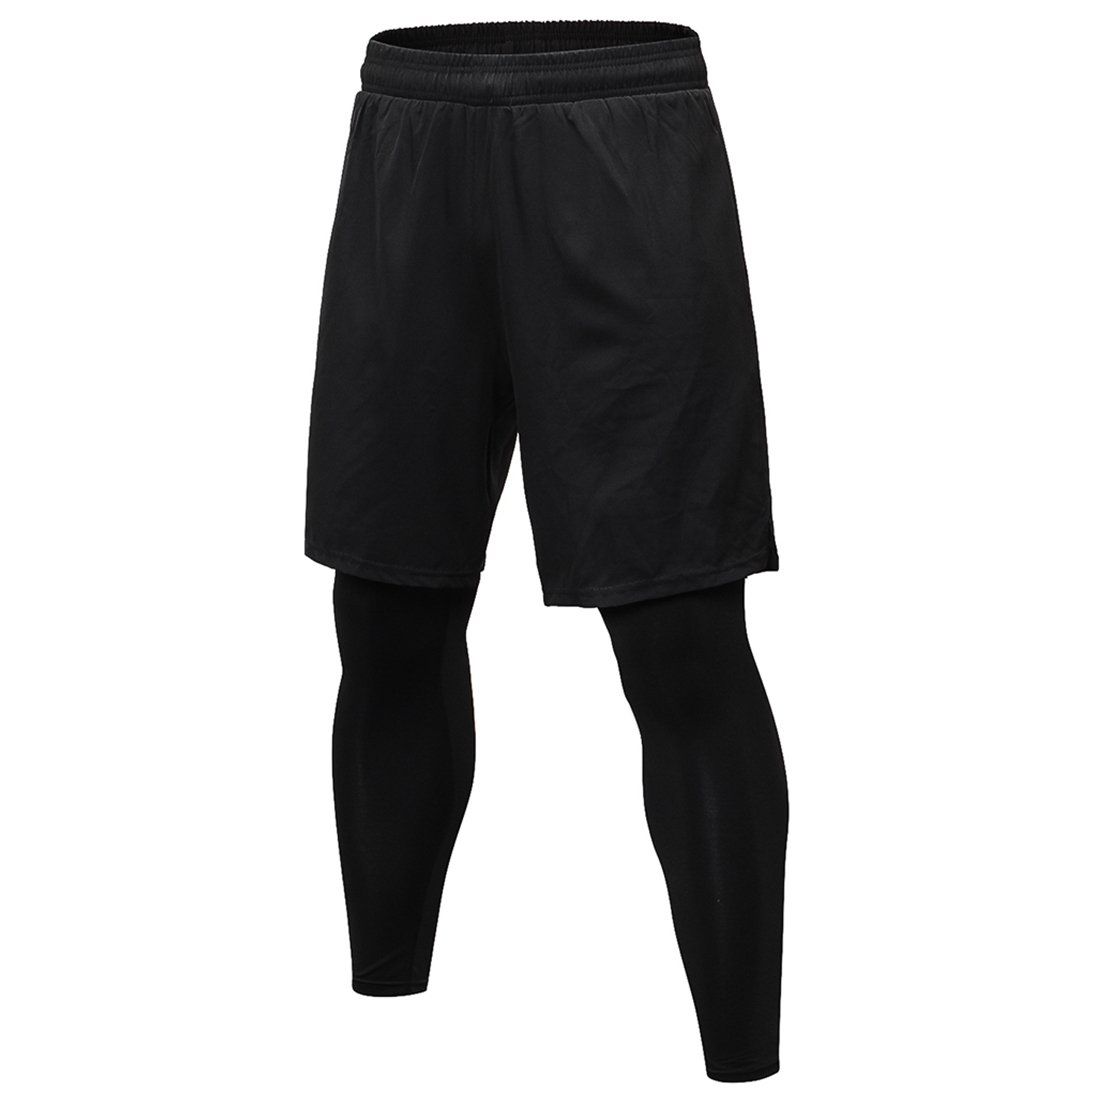 SEVENWELL Männer Sport 2 In 1 Basketball Shorts Kompression Laufhose Hosen